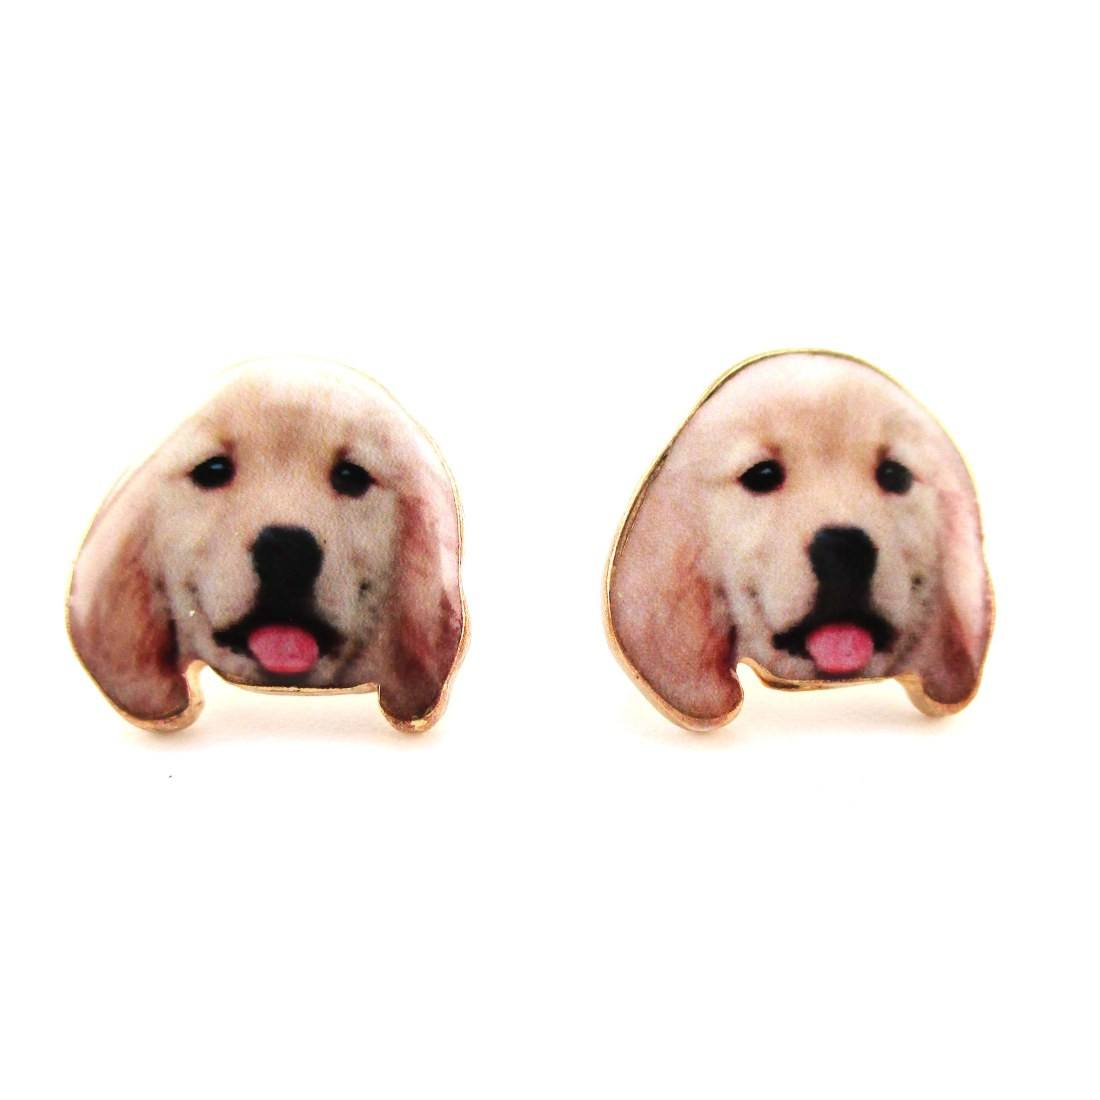 Golden Retriever Puppy Face Portrait Shaped Stud Earrings | DOTOLY